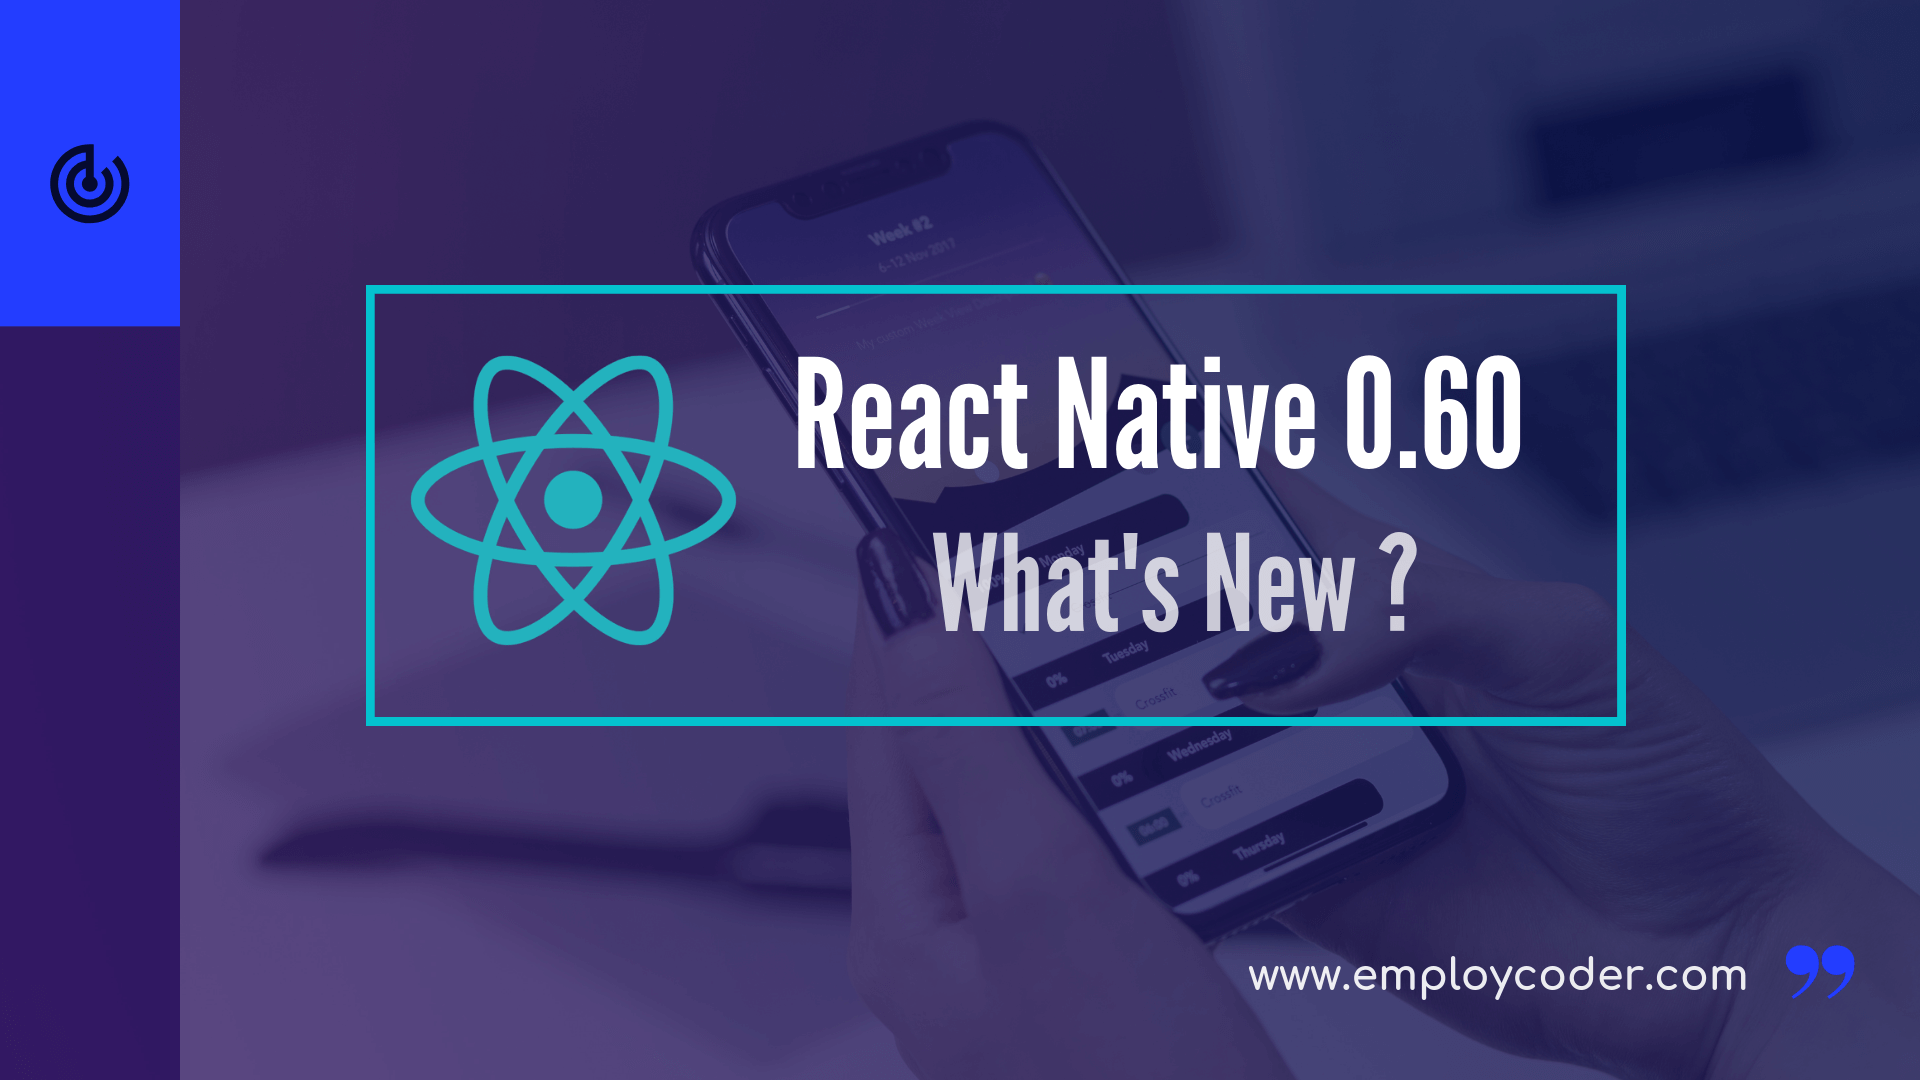 What's New in React Native 0.60?